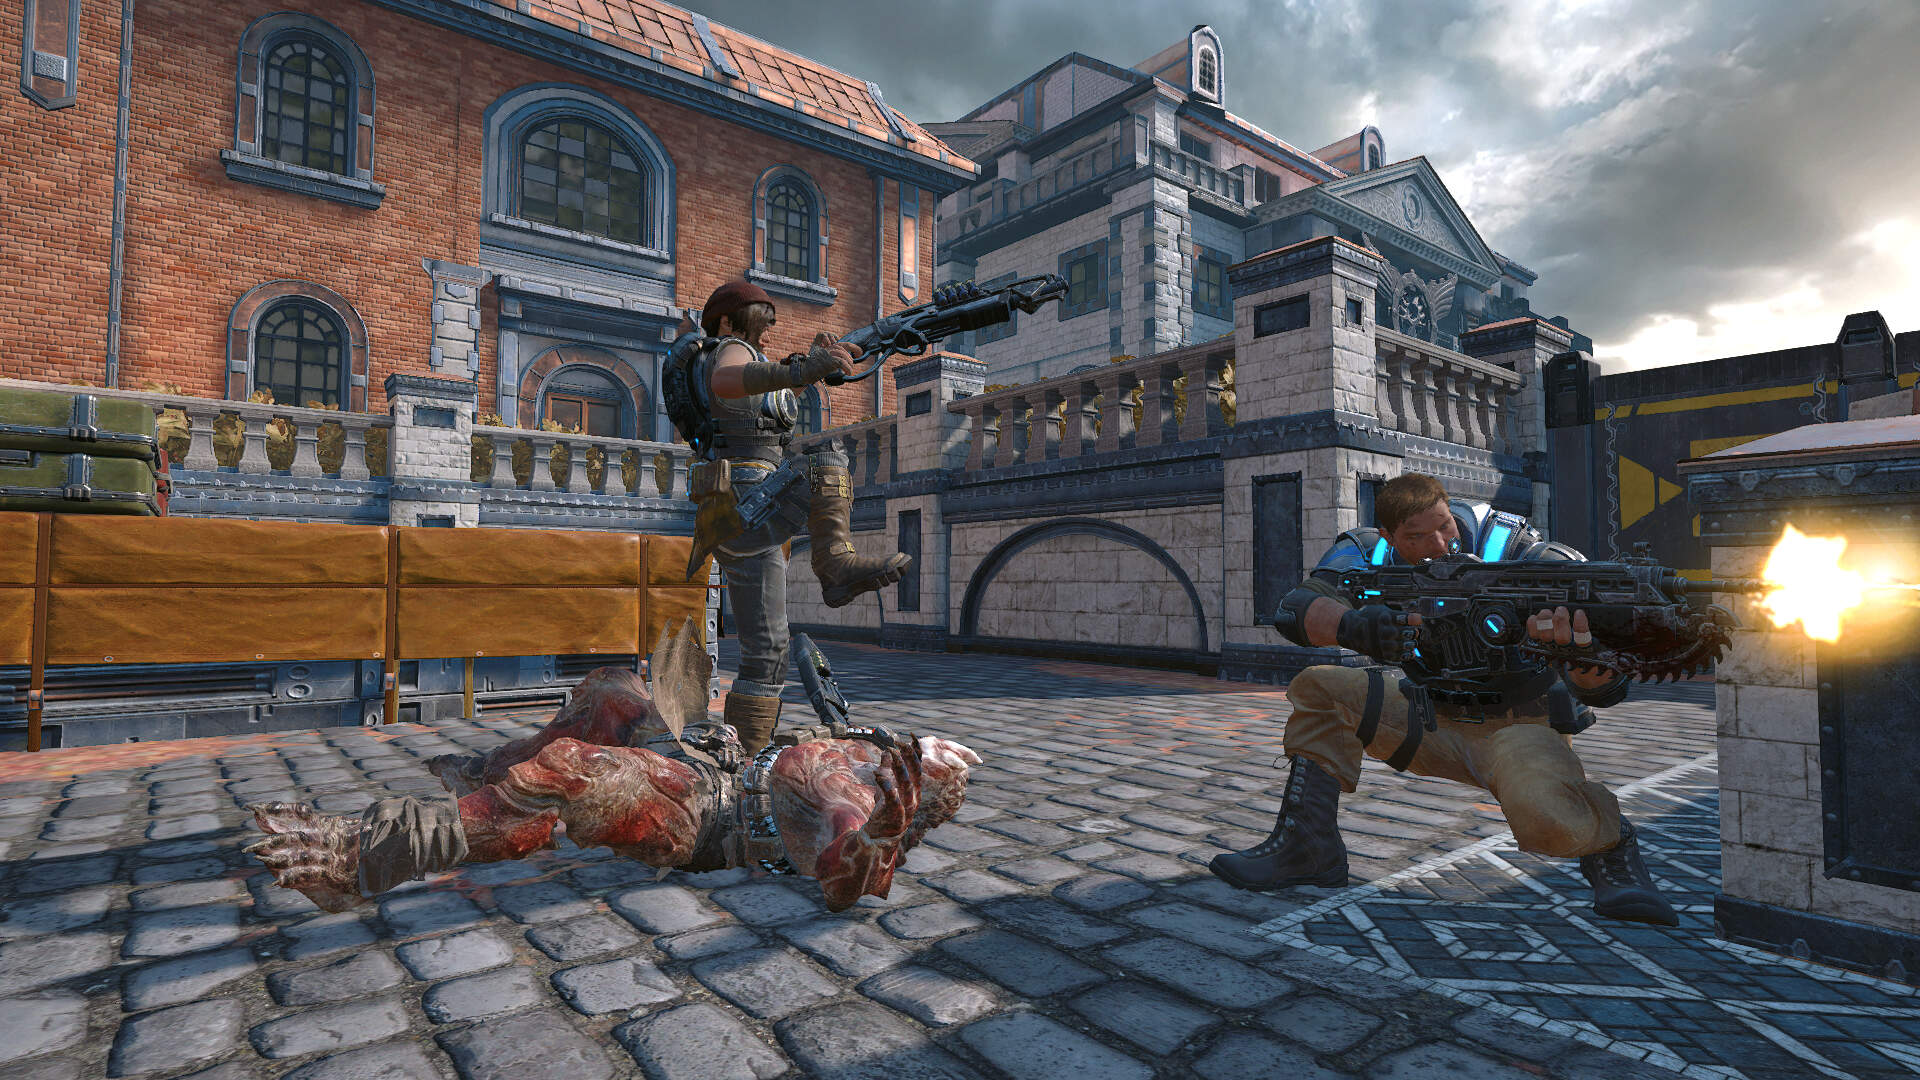 Tuesday Stream: Gears of War 4 Multiplayer Beta [Done]